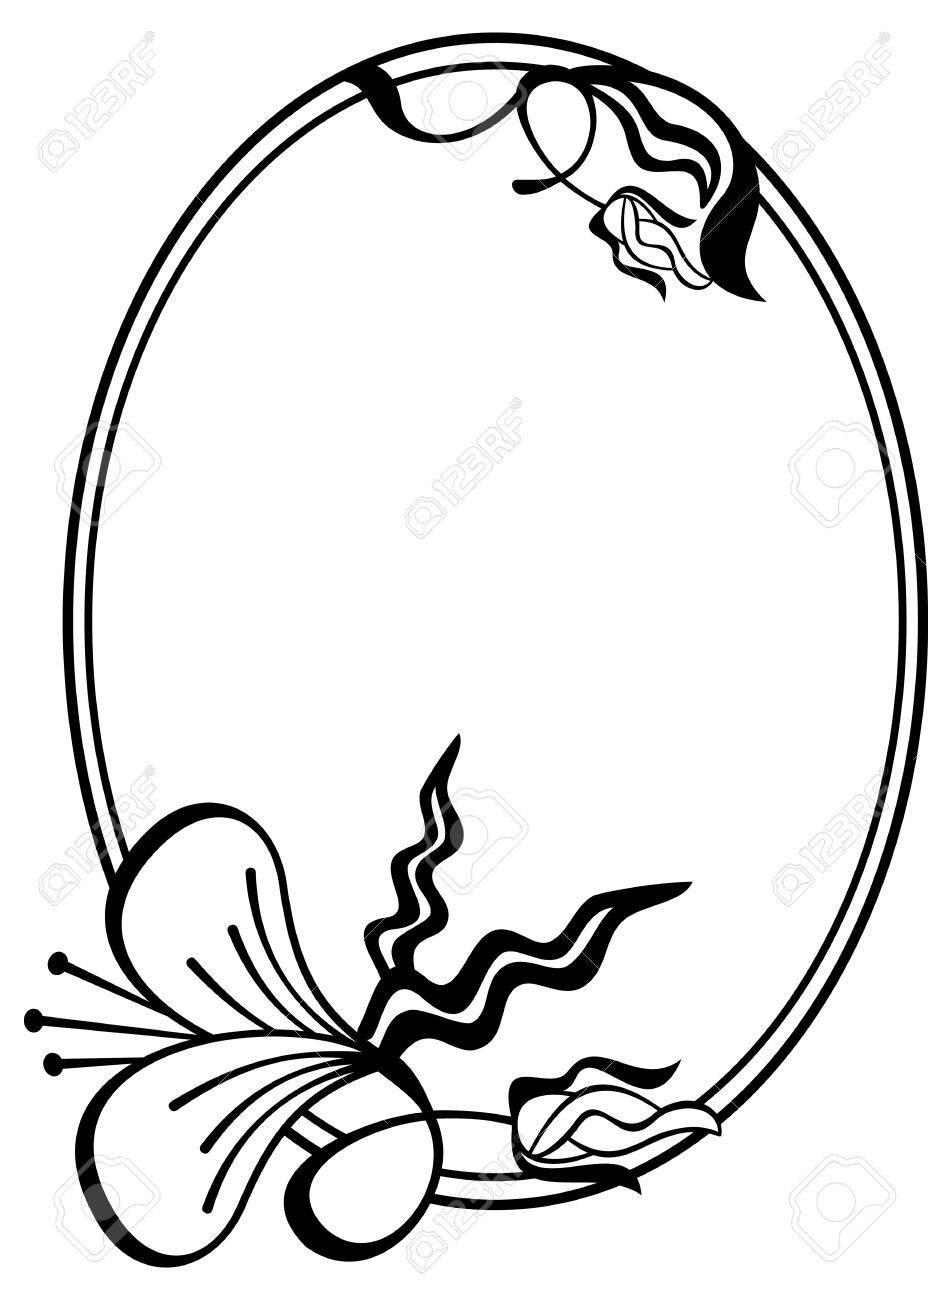 Rose oval frame clipart black and white freeuse download Oval Frame Clipart | Free download best Oval Frame Clipart ... freeuse download